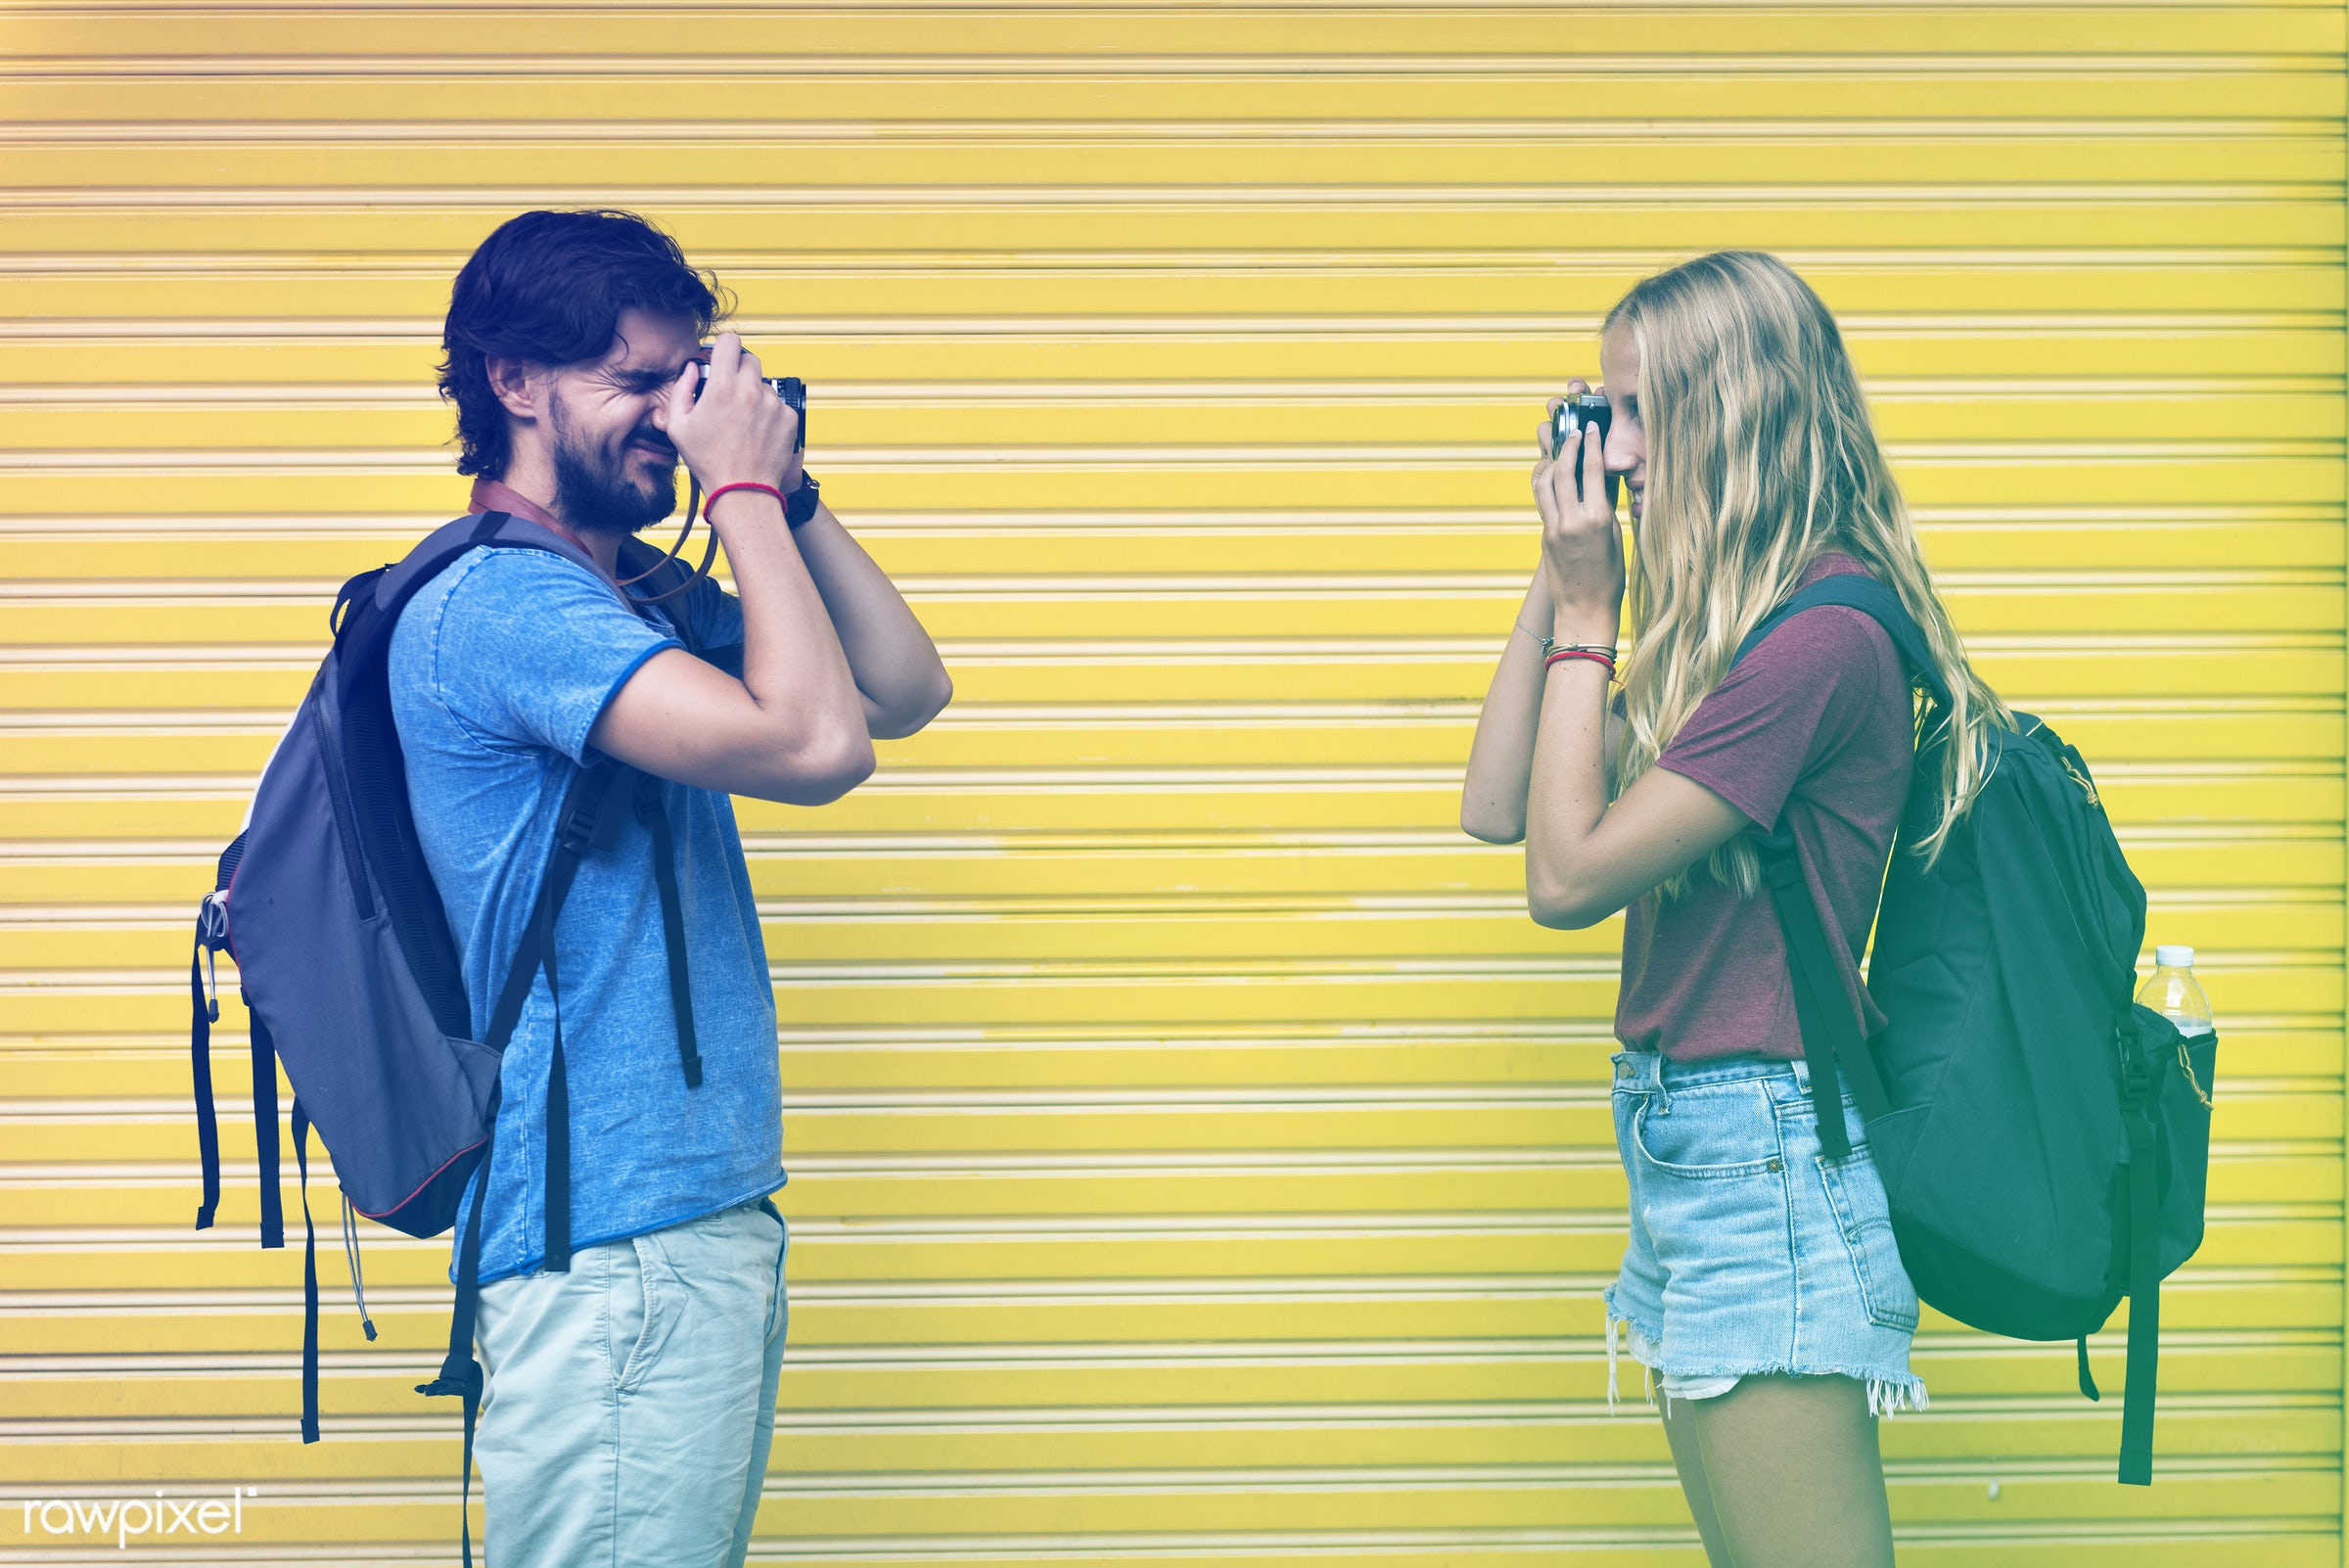 backpackers, faded, yellow, vibrant, travel, people, together, city, woman, blend, partner, light, art, holiday, vacation,...